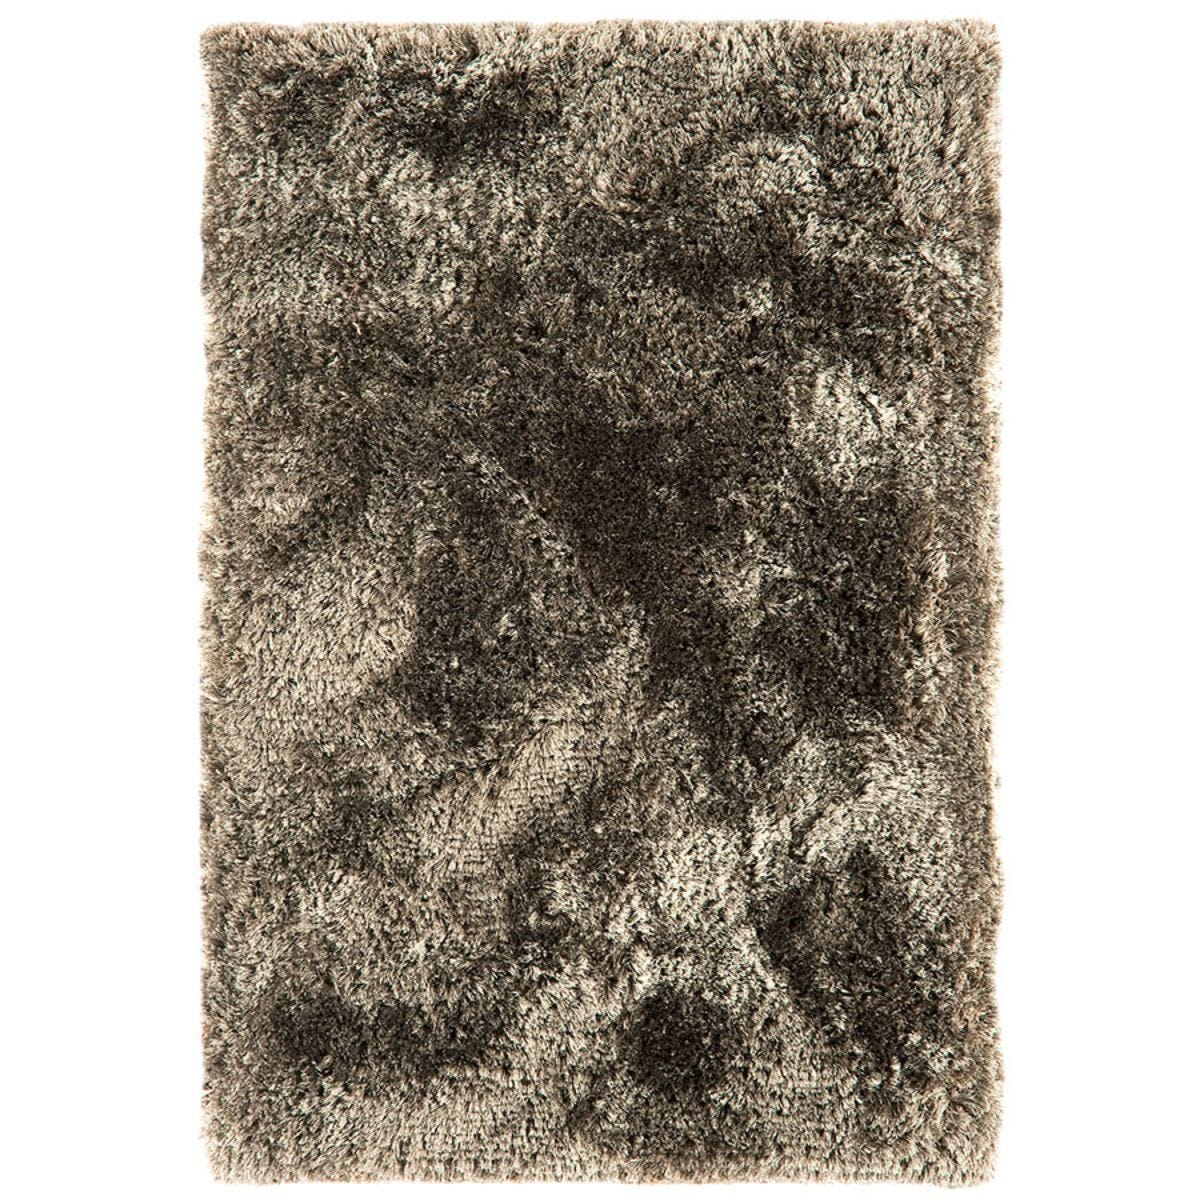 Asiatic Plush Shaggy Rug, 120 x 170cm - Taupe